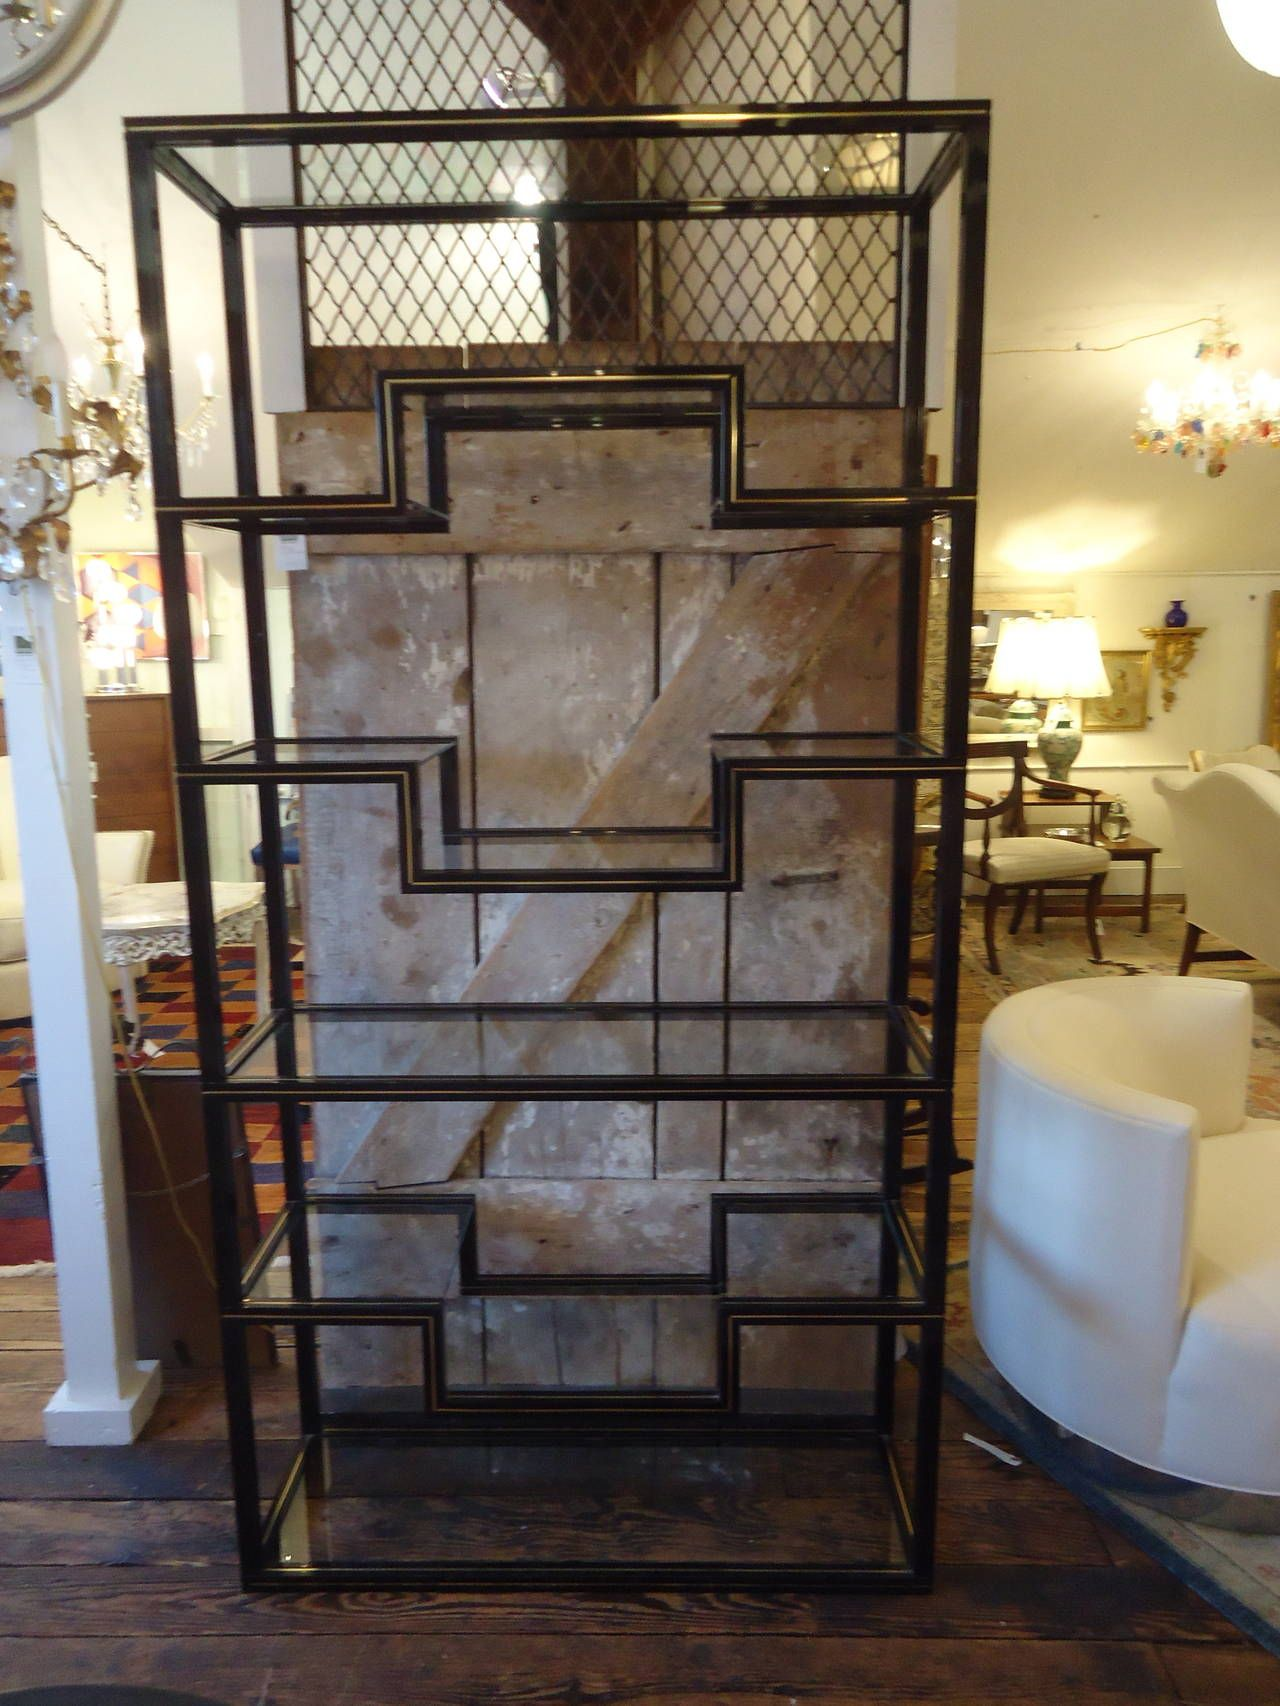 Super Chic Pierre Vandel Lacquered Aluminum Tag Re Glass  # Etagere Television Plat